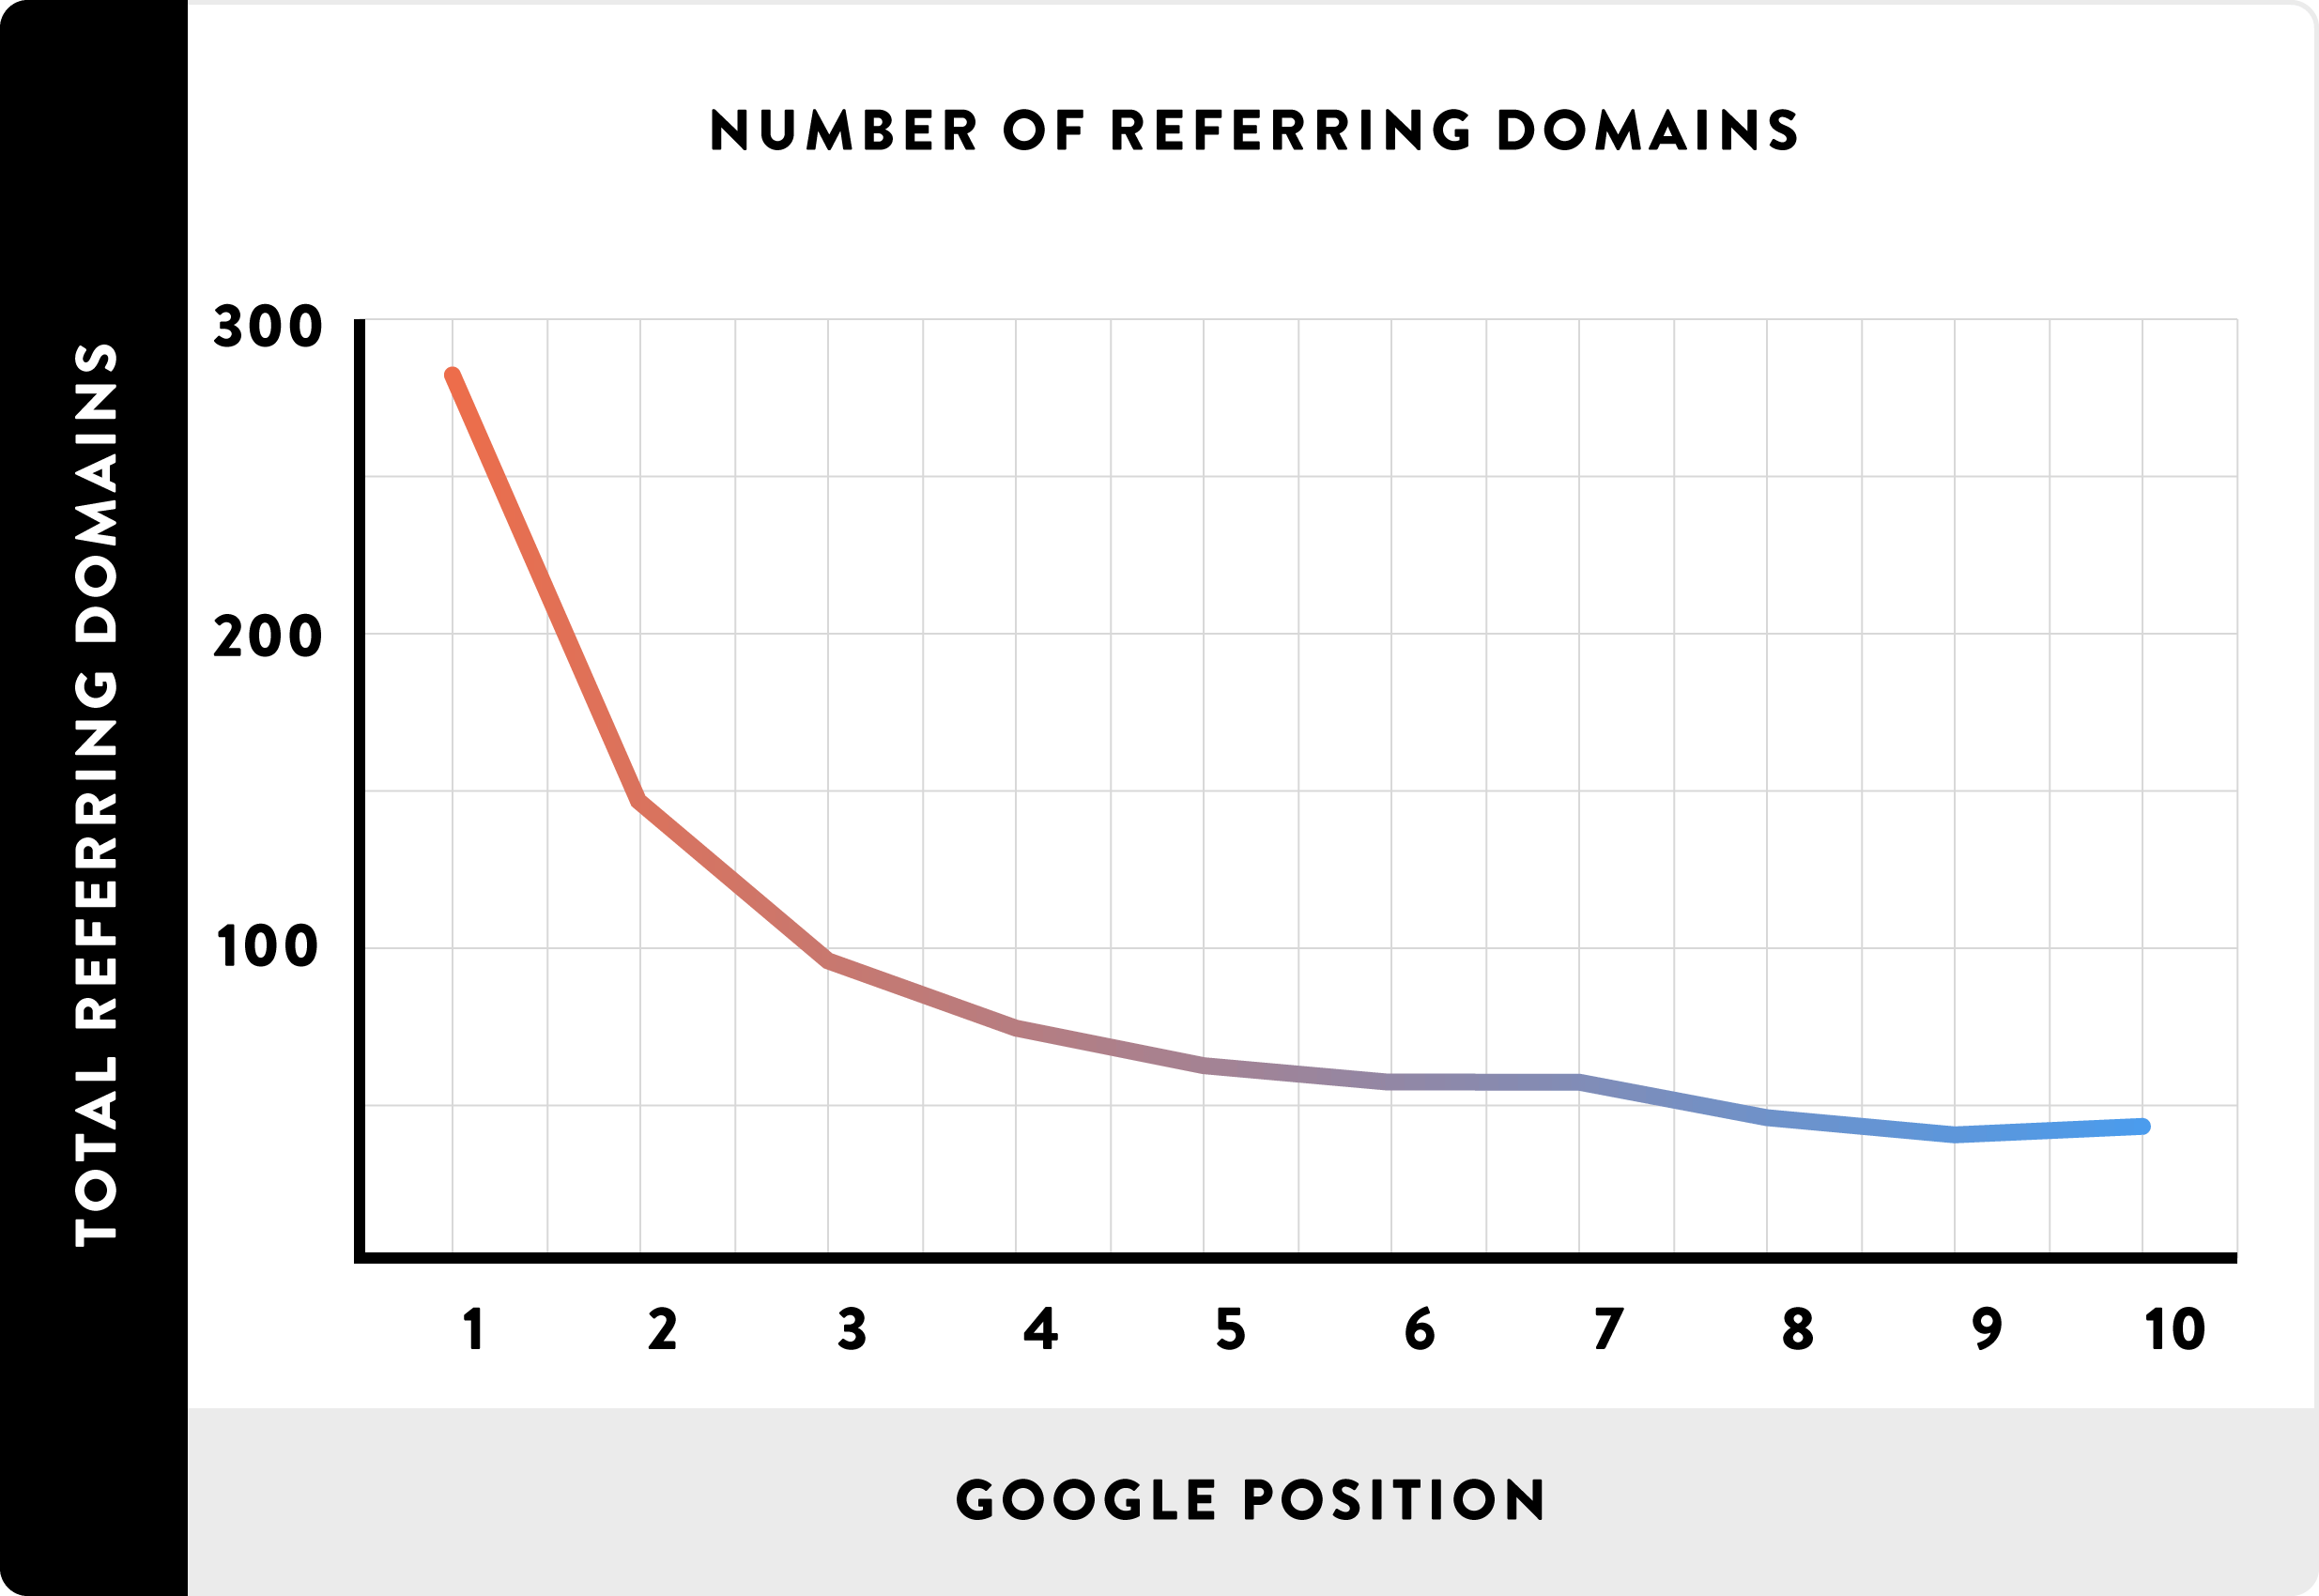 Number_of_referring_domains_google_ranking